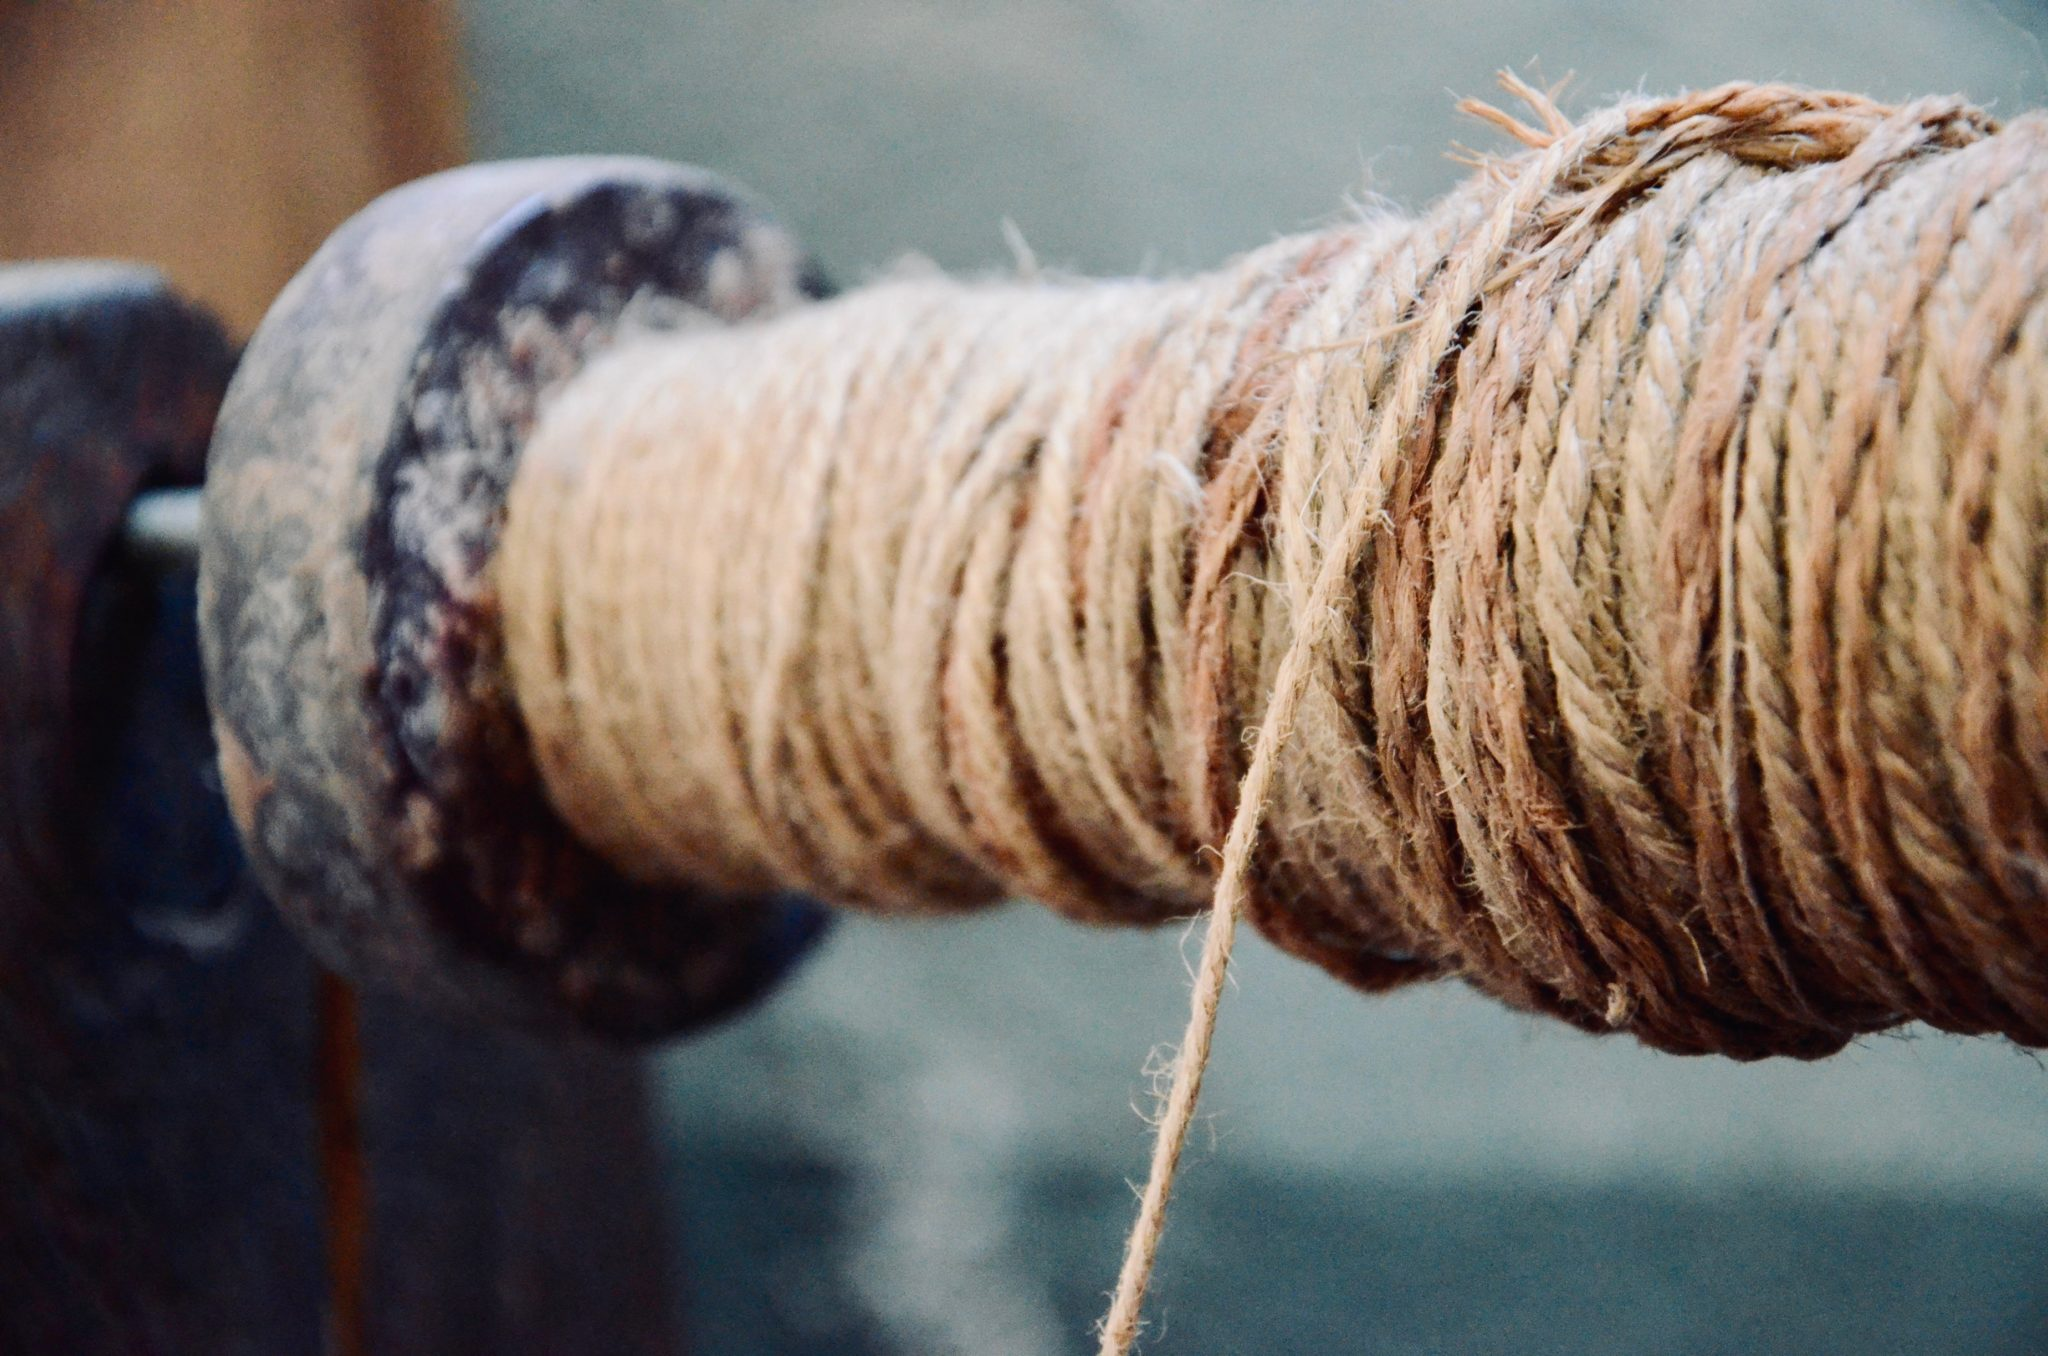 Rope making